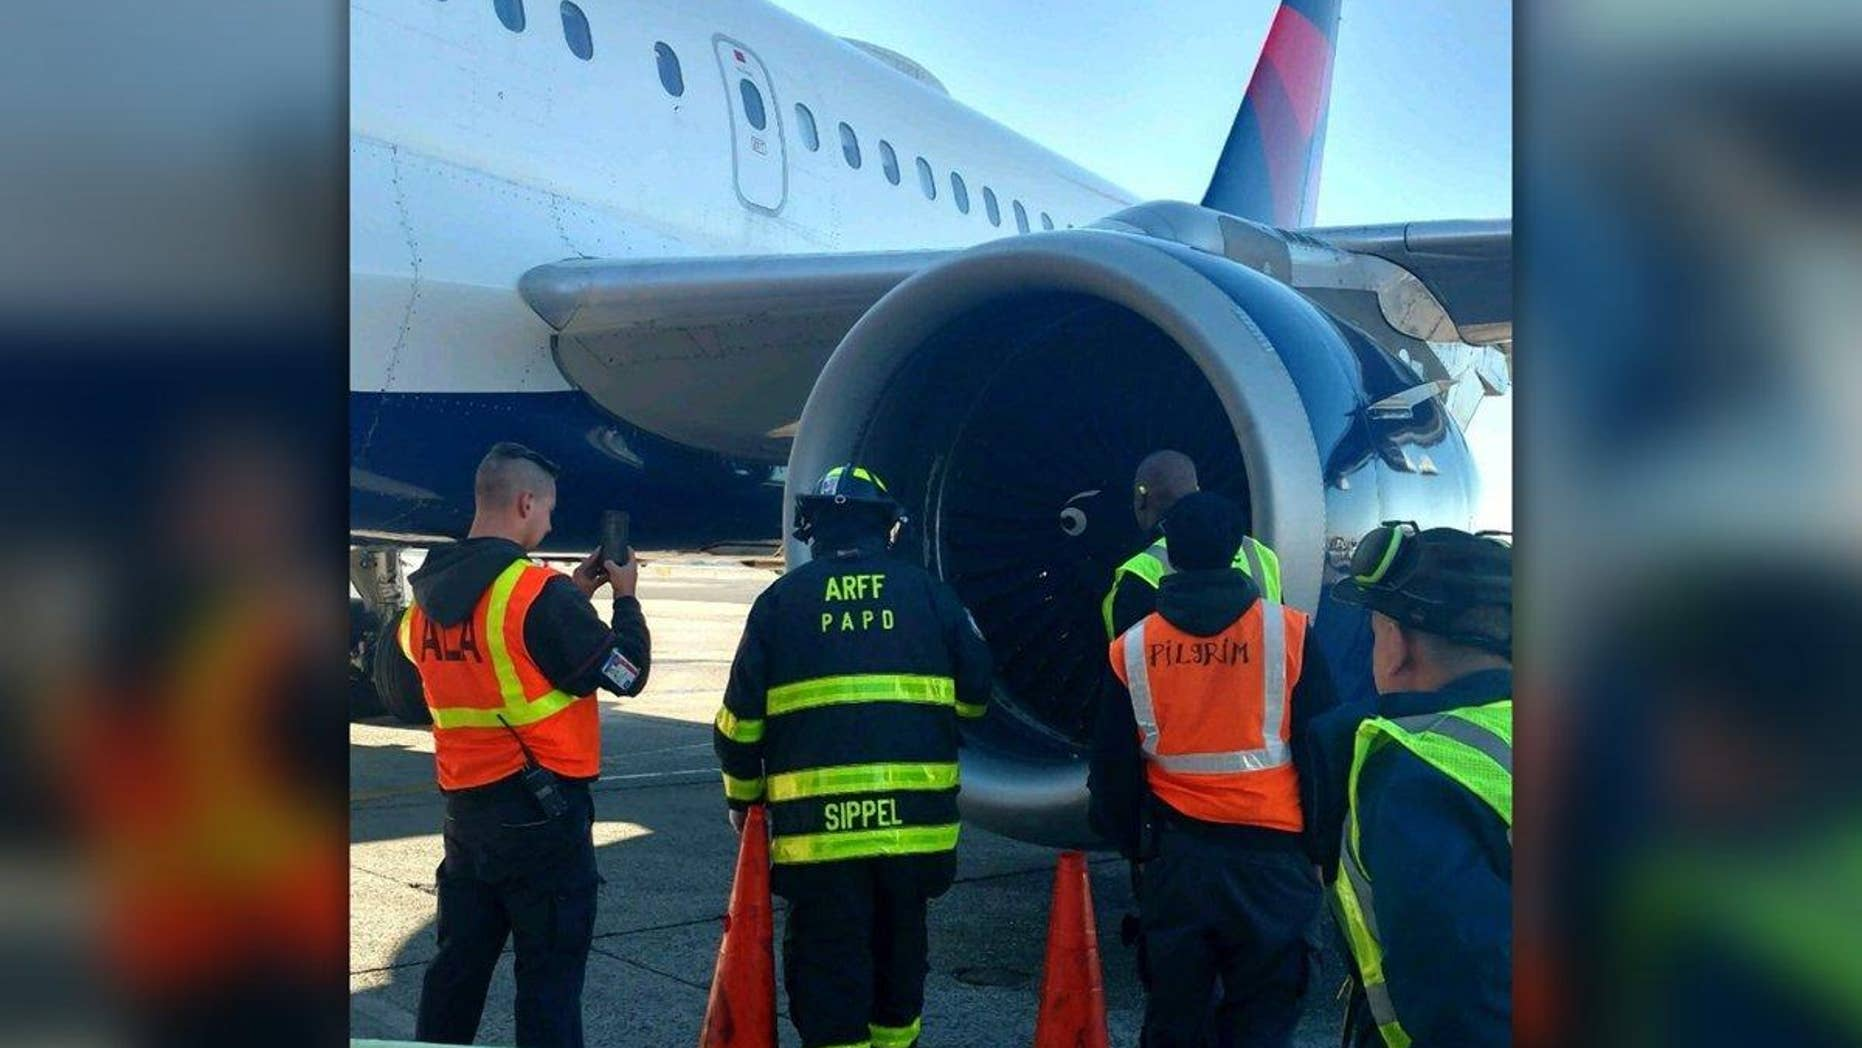 The plane was diverted back to JFK airport to be inspected by the Port Authority Police Department Aircraft Rescue Fire Fighter Unit.